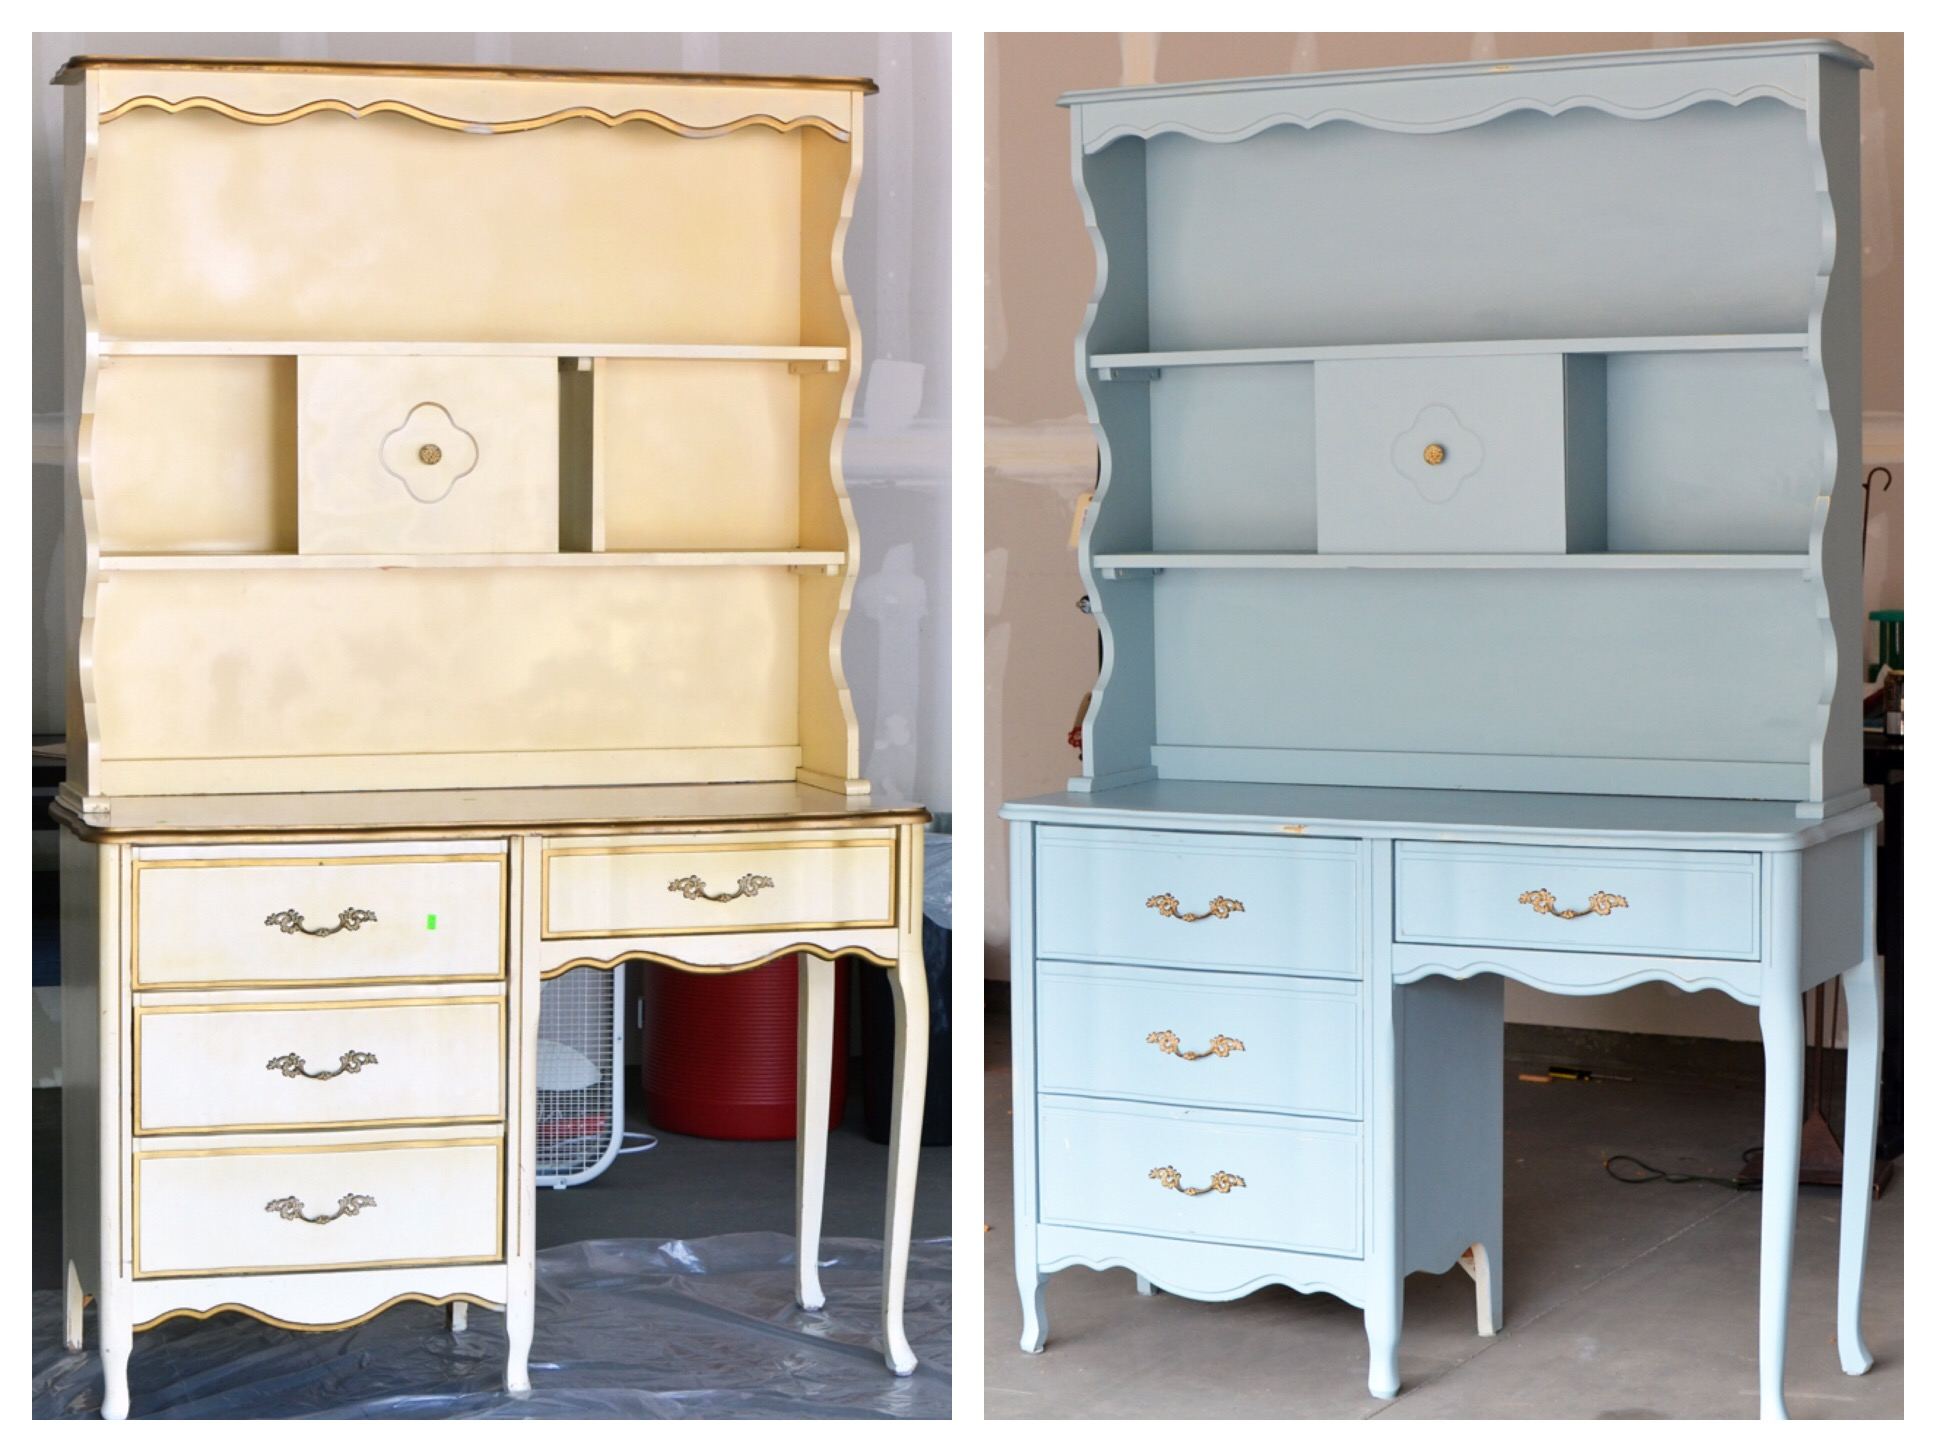 Picture of Chalk Paint Furniture Transformation